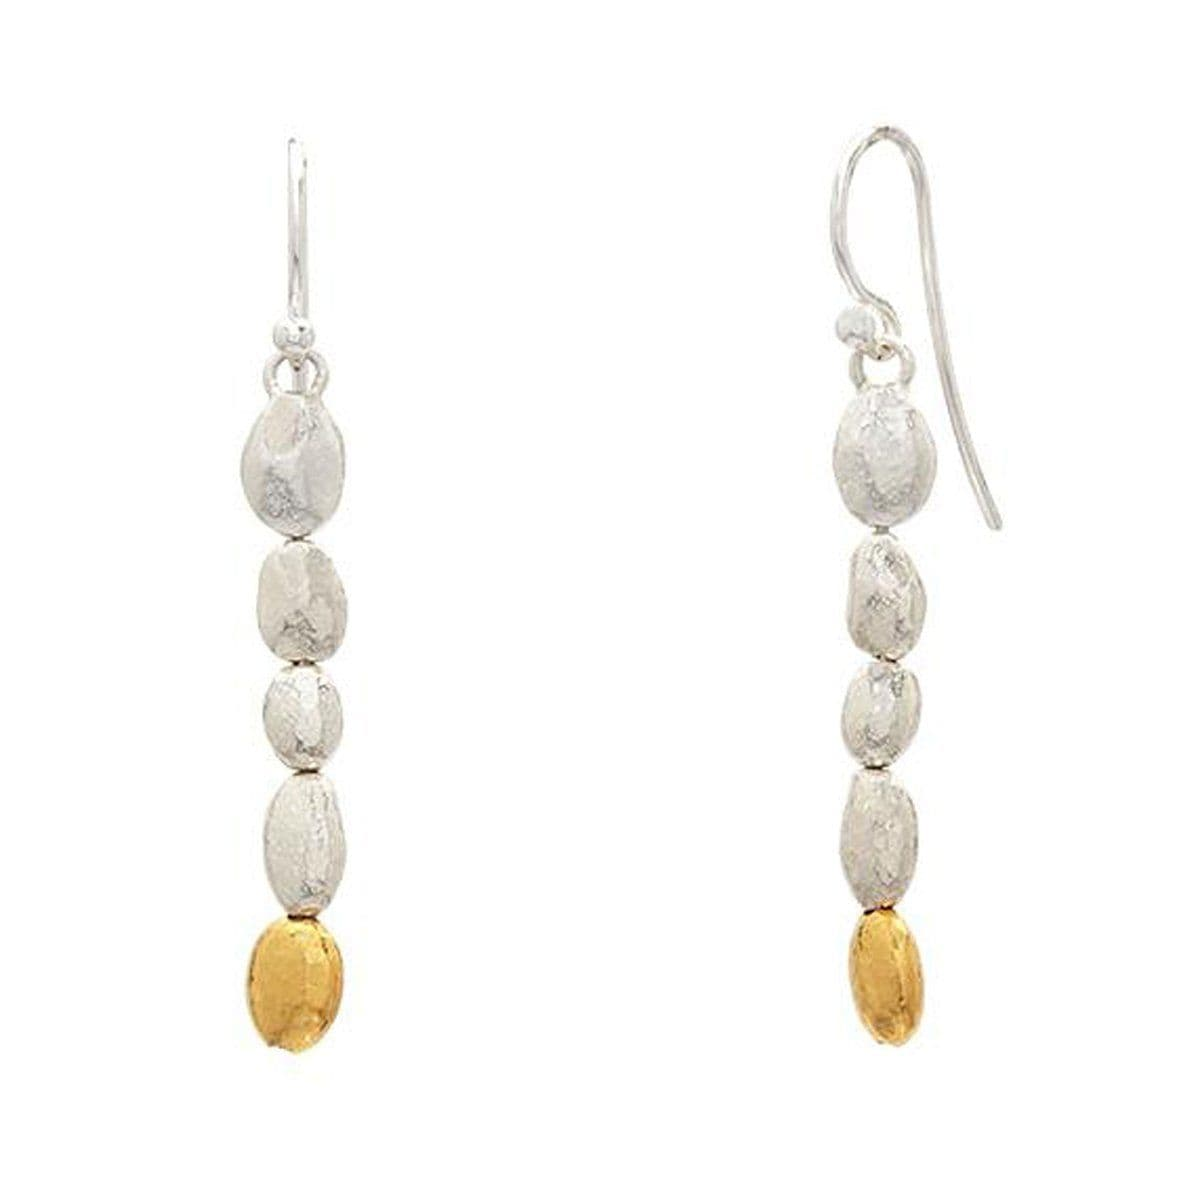 Silver & Gold Long Drop Earrings - EHSSG-NGXXS-1G-4W-GURHAN-Renee Taylor Gallery